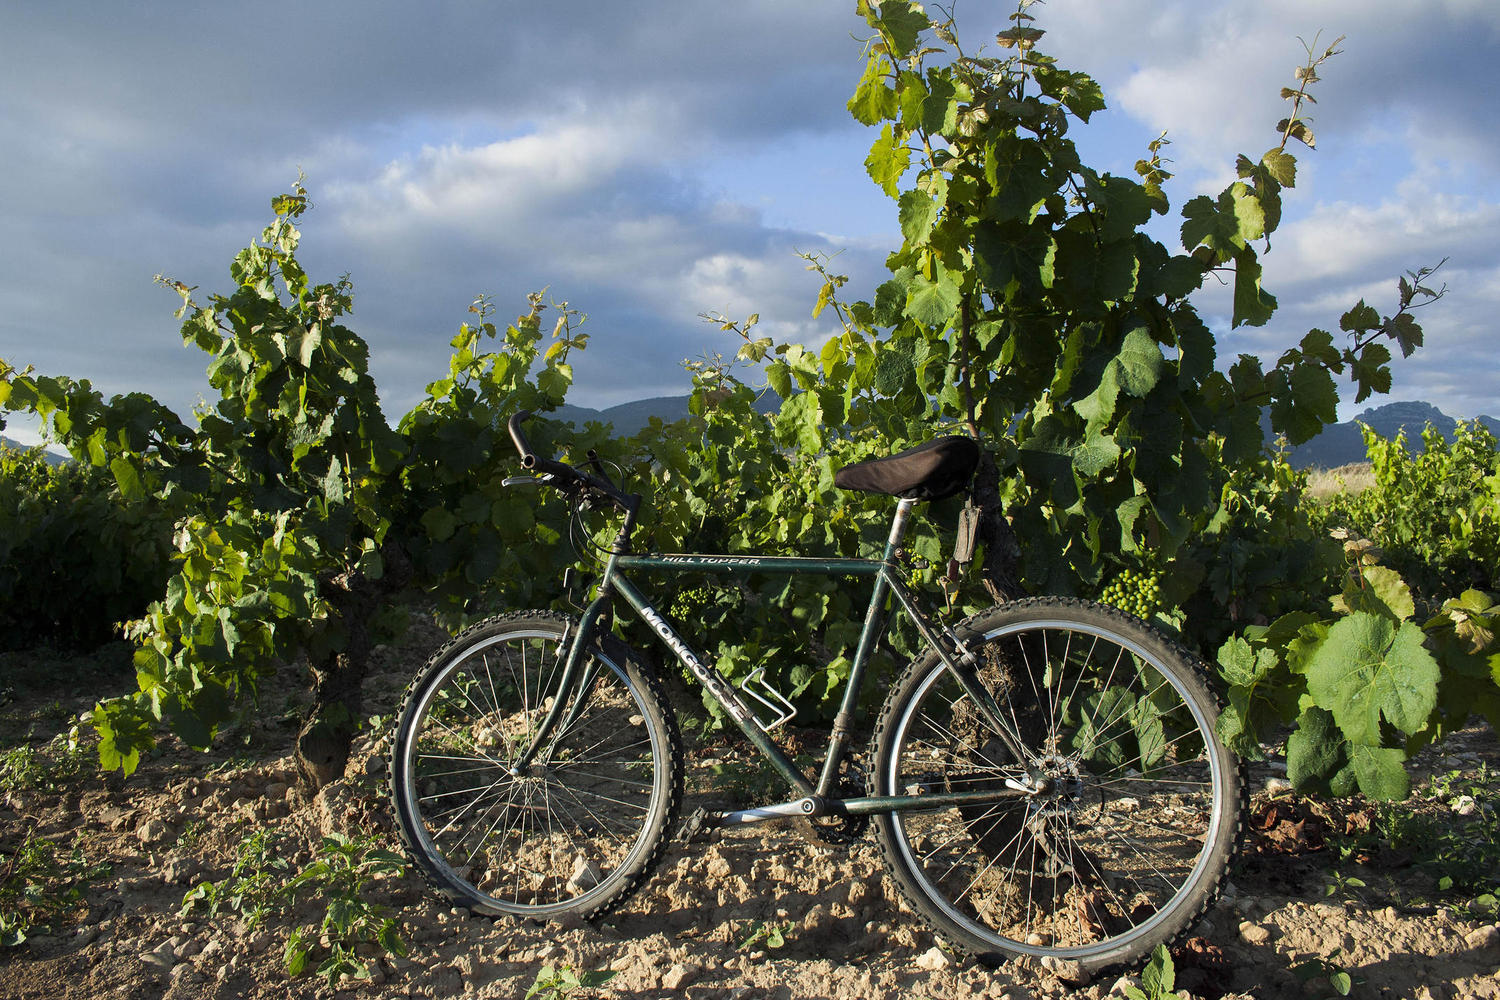 Cycling is a great way to explore the Rioja region.